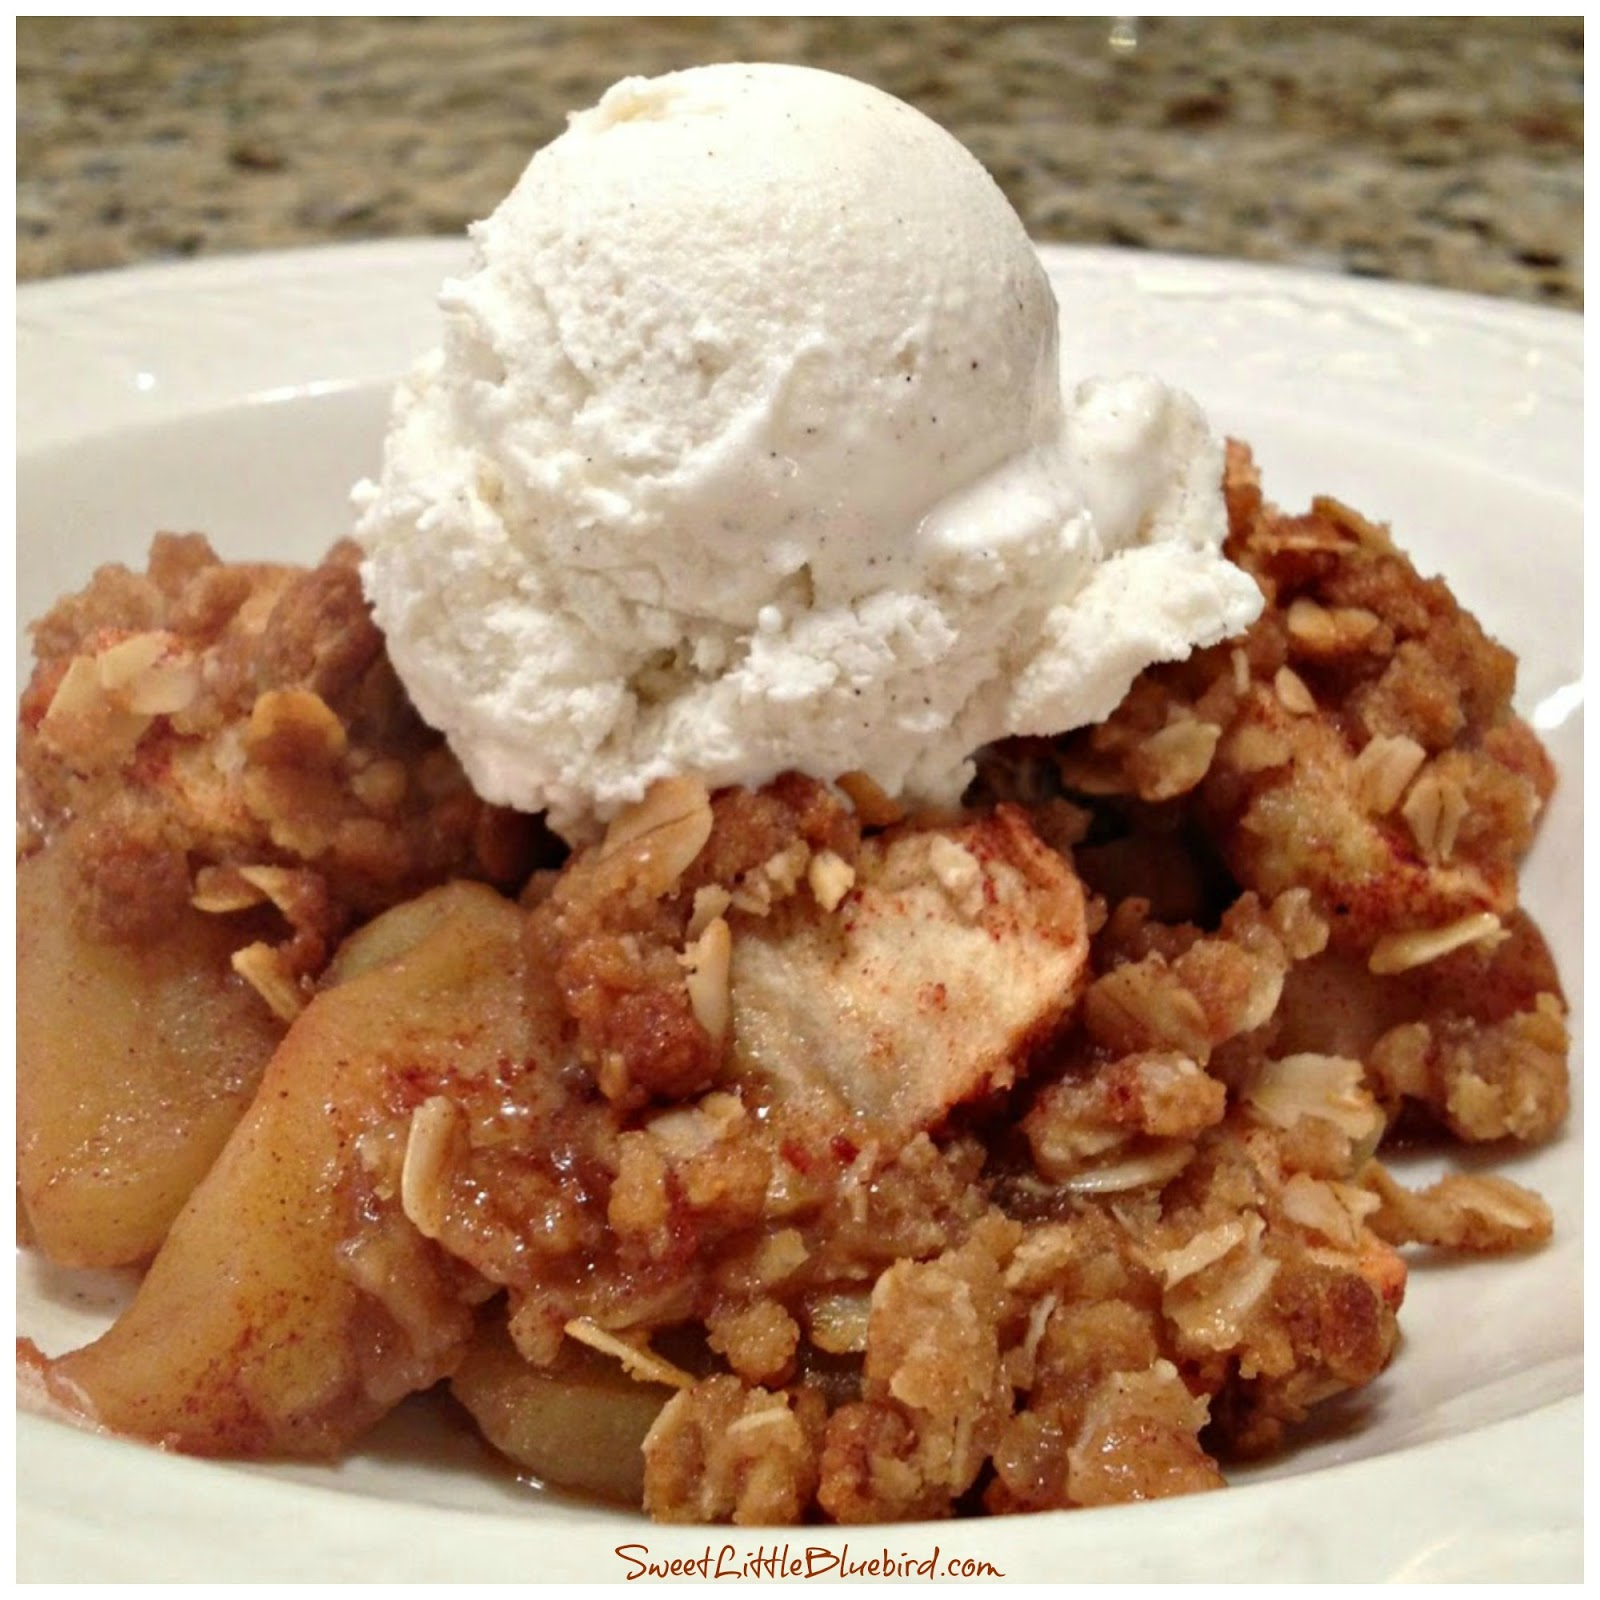 Sweet Little Bluebird: Quick and Easy Apple Crisp